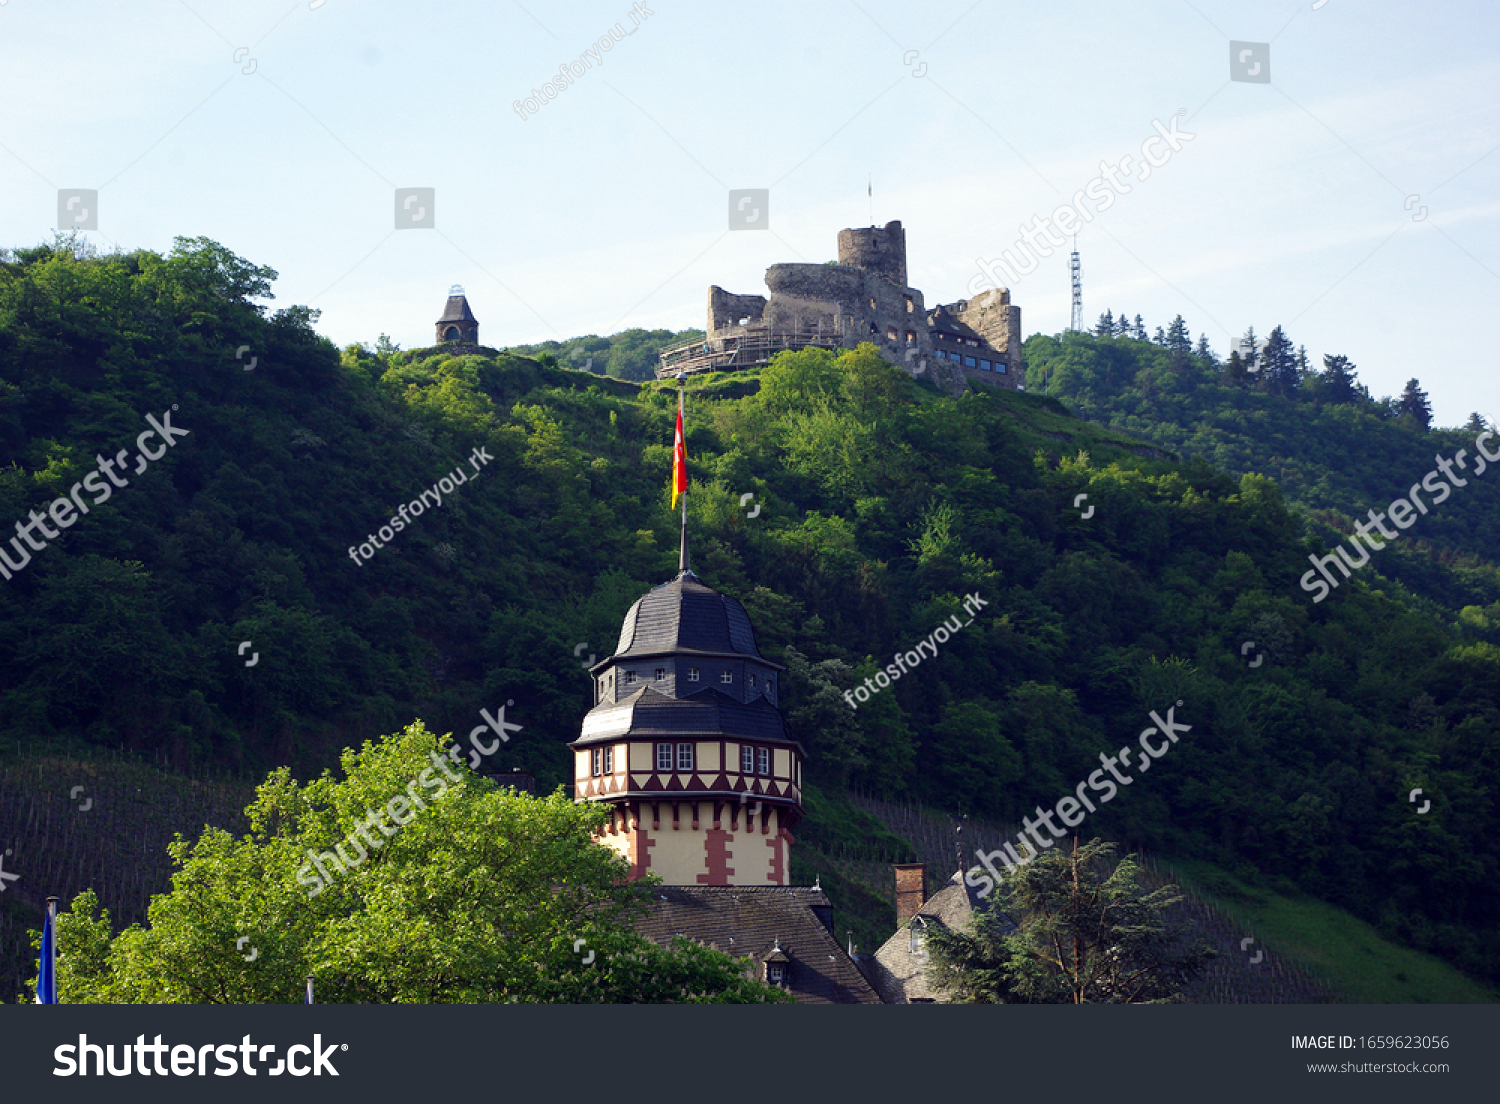 Castle in Cochem on the Moselle